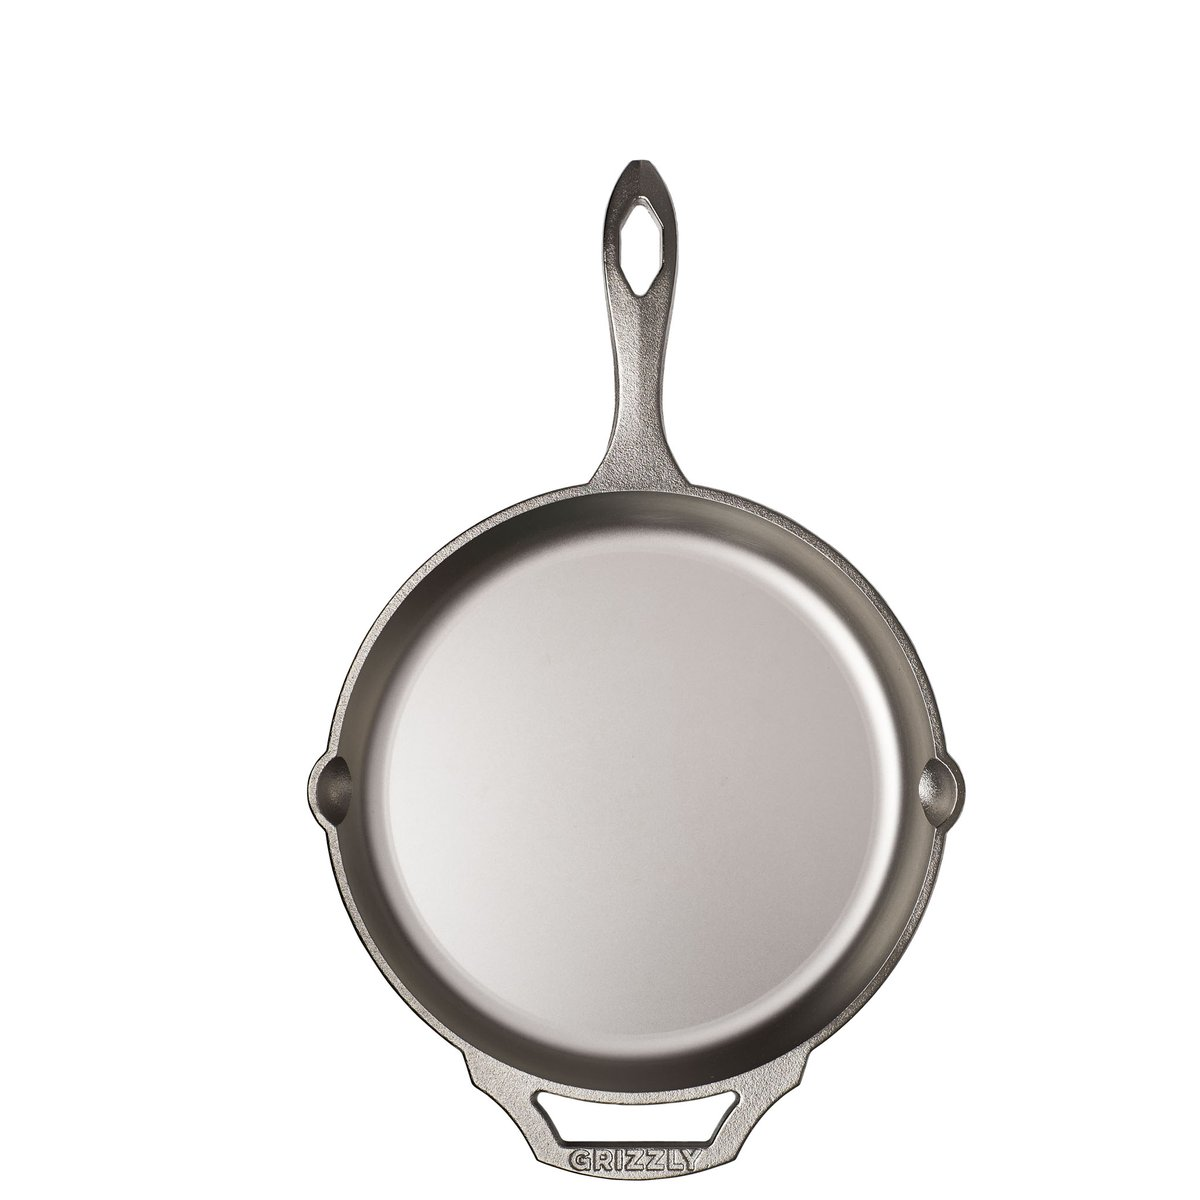 "GRIZZLY 10"" Cast Iron Skillet"